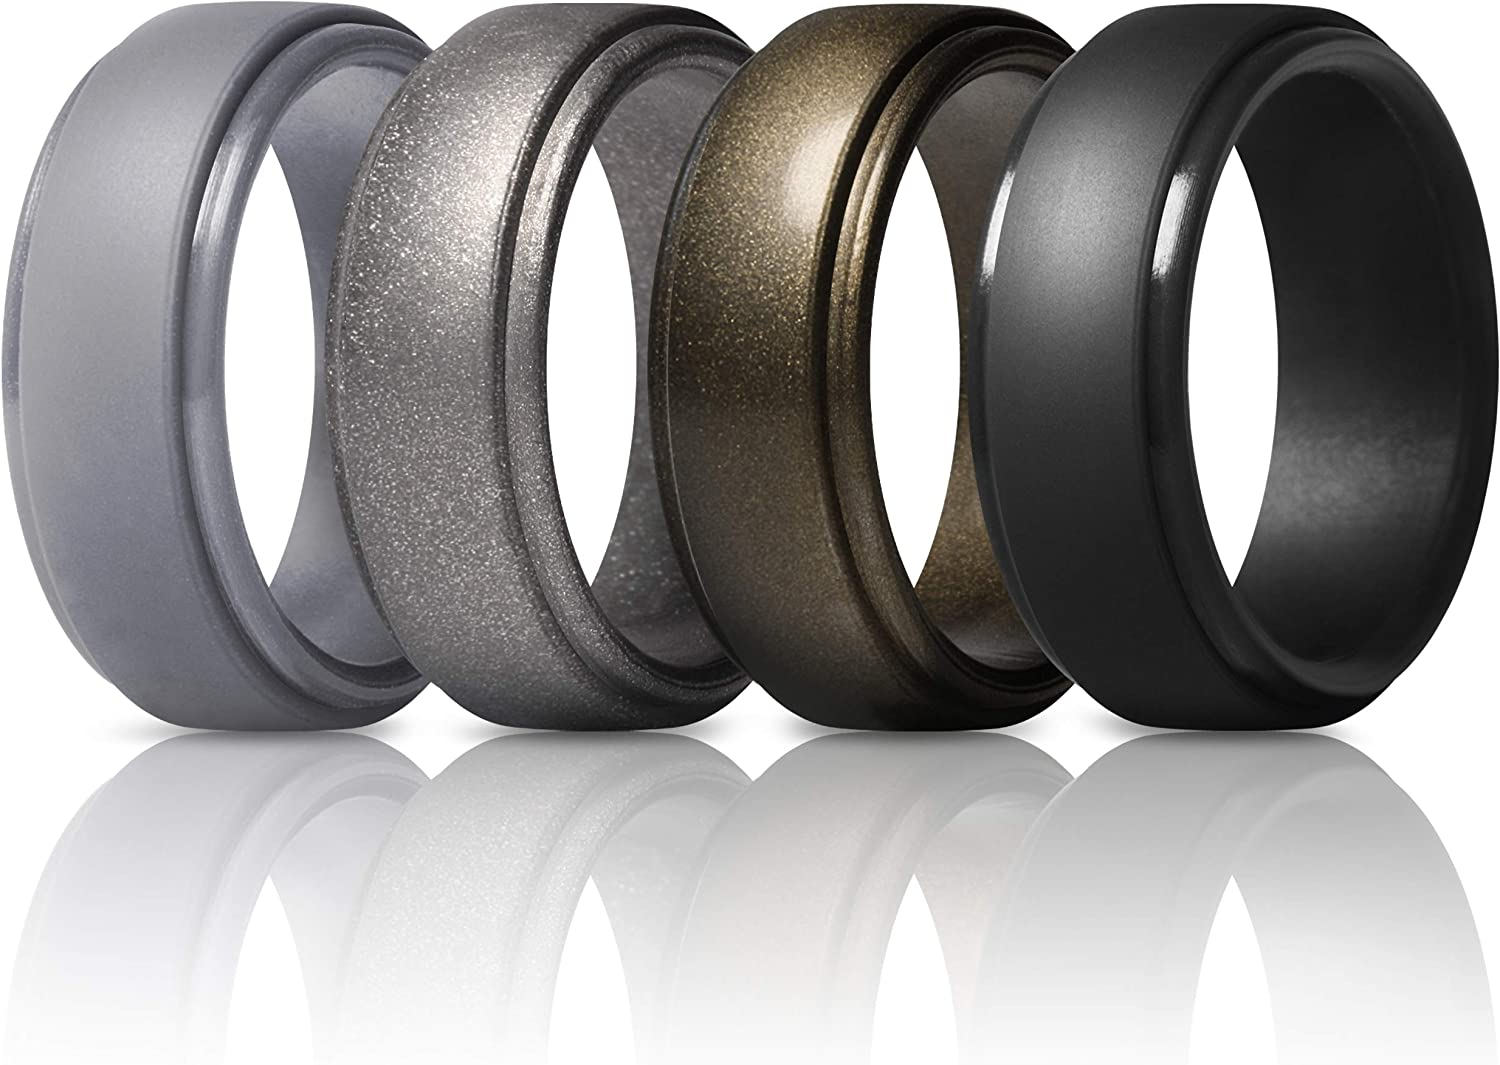 ThunderFit Men's Silicone Ring, Step Edge Rubber Wedding Band, 10mm Wide, 2.5mm Thick